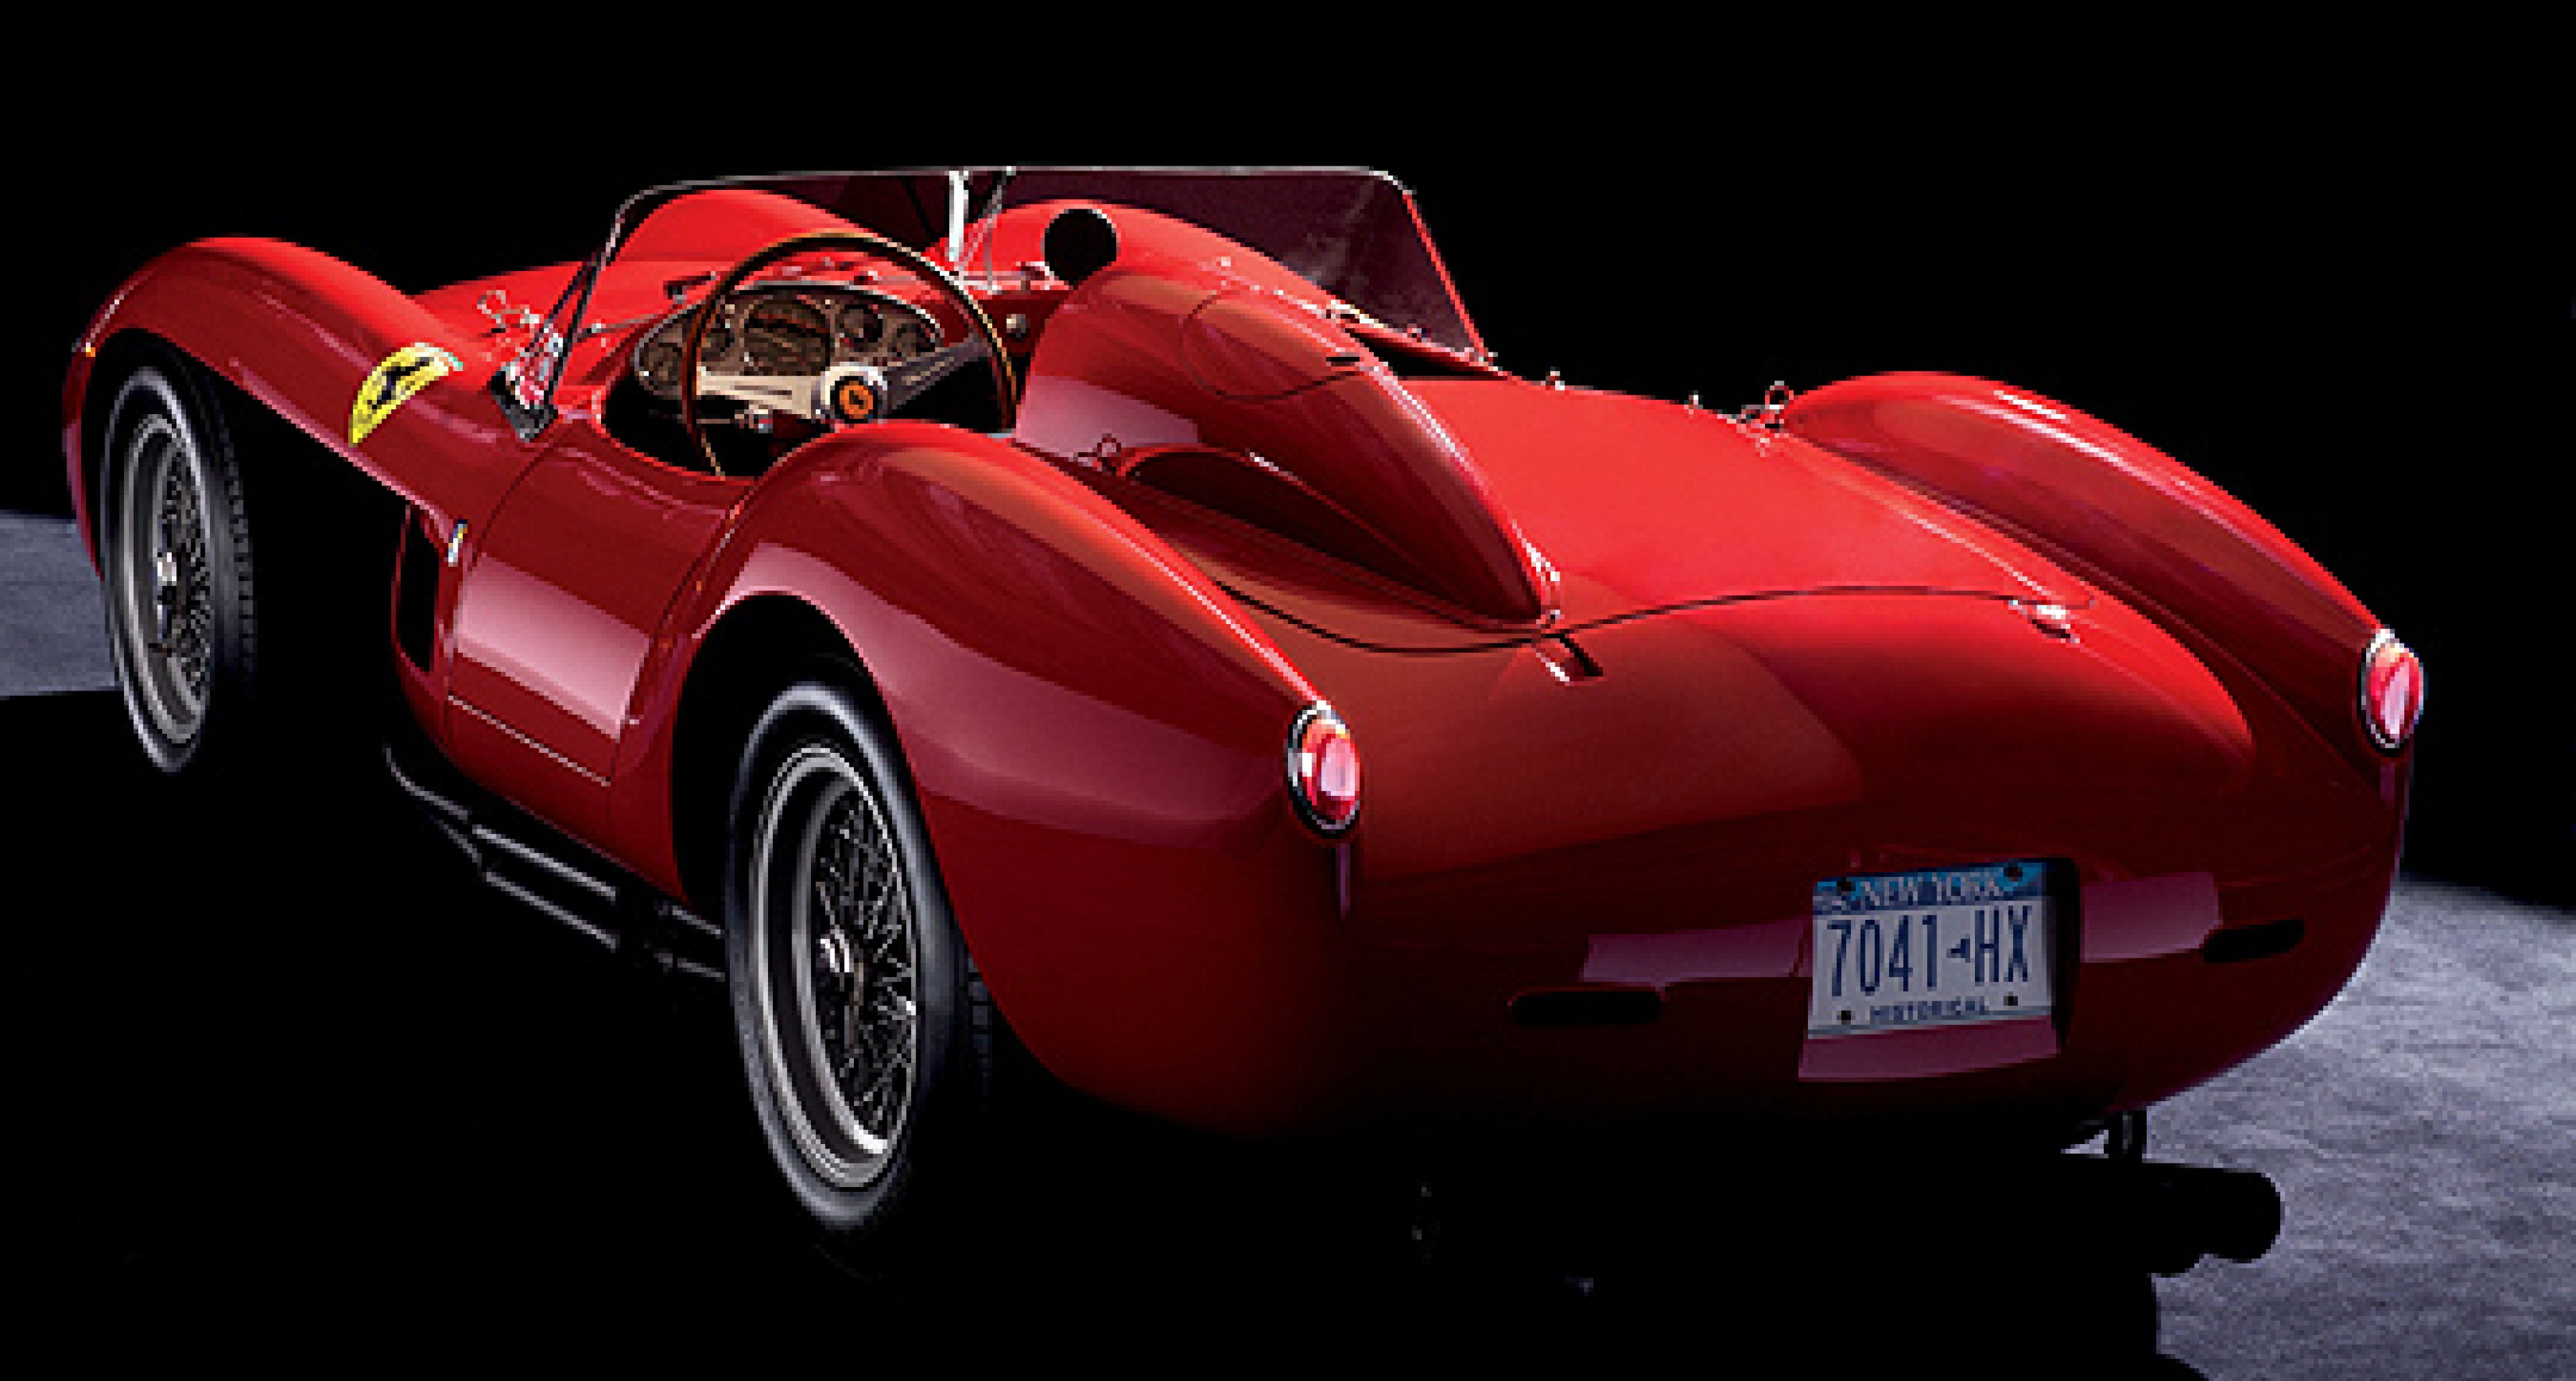 Video: The Art of the Automobile - Masterpieces from the Ralph Lauren Collection